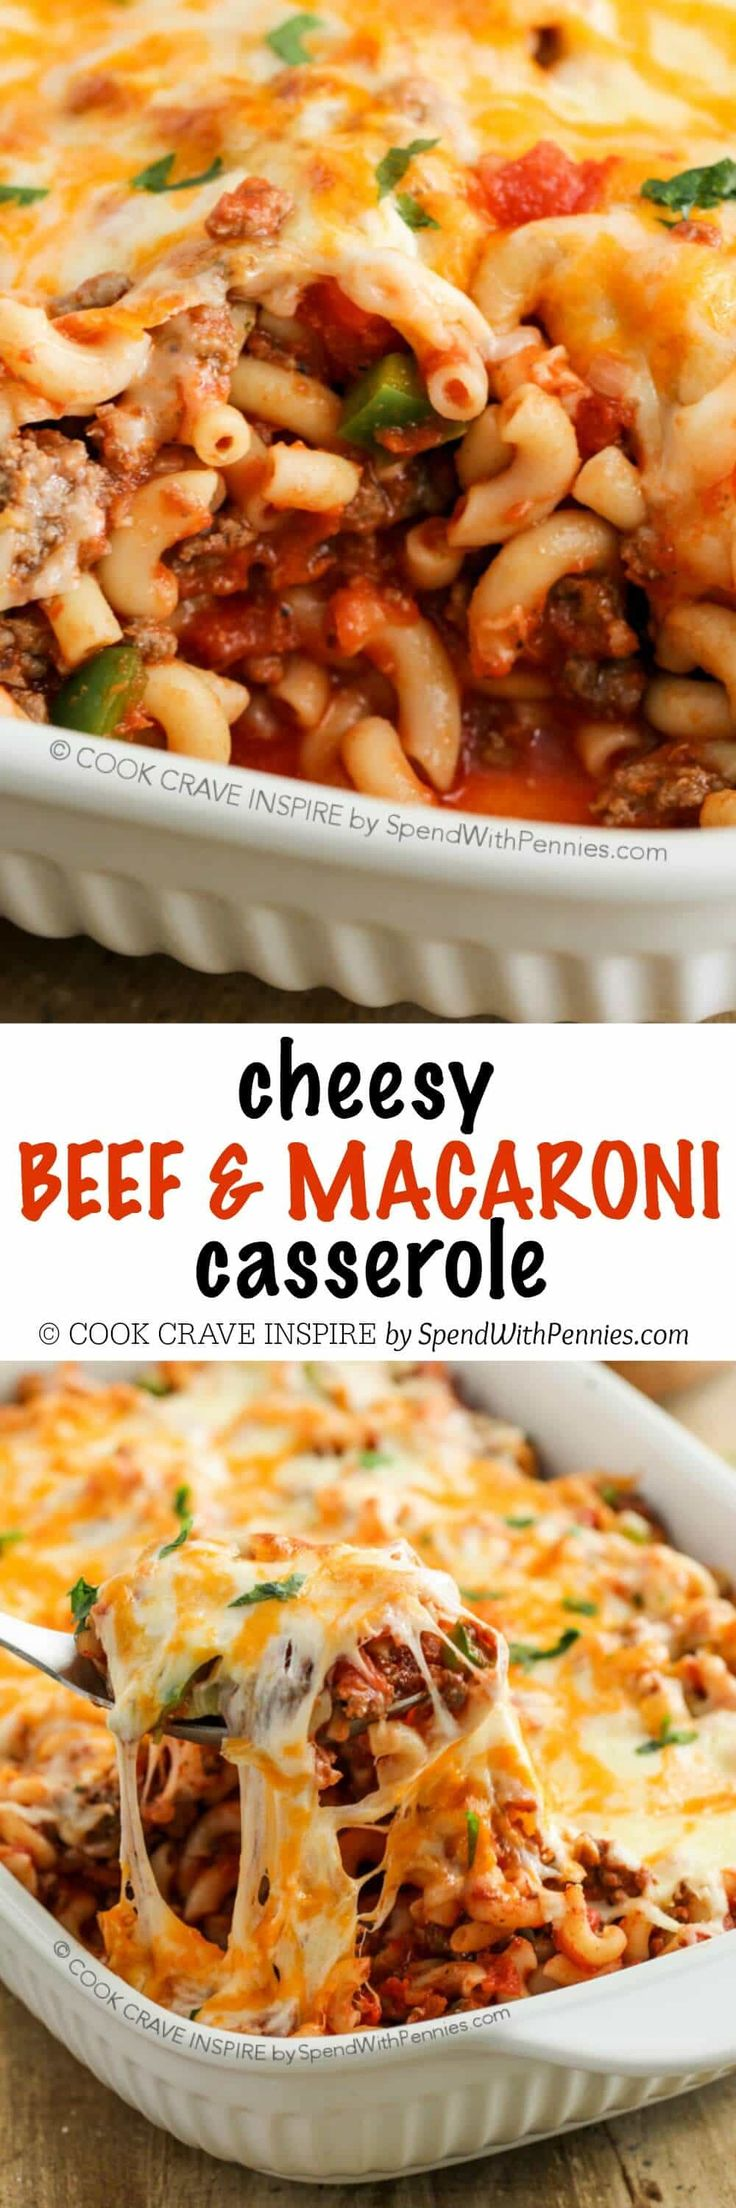 This Cheesy Beef & Macaroni Casserole is a easy to put together and it boasts big flavor! We've made it this recipe countless times and everyone in my family raves about it!